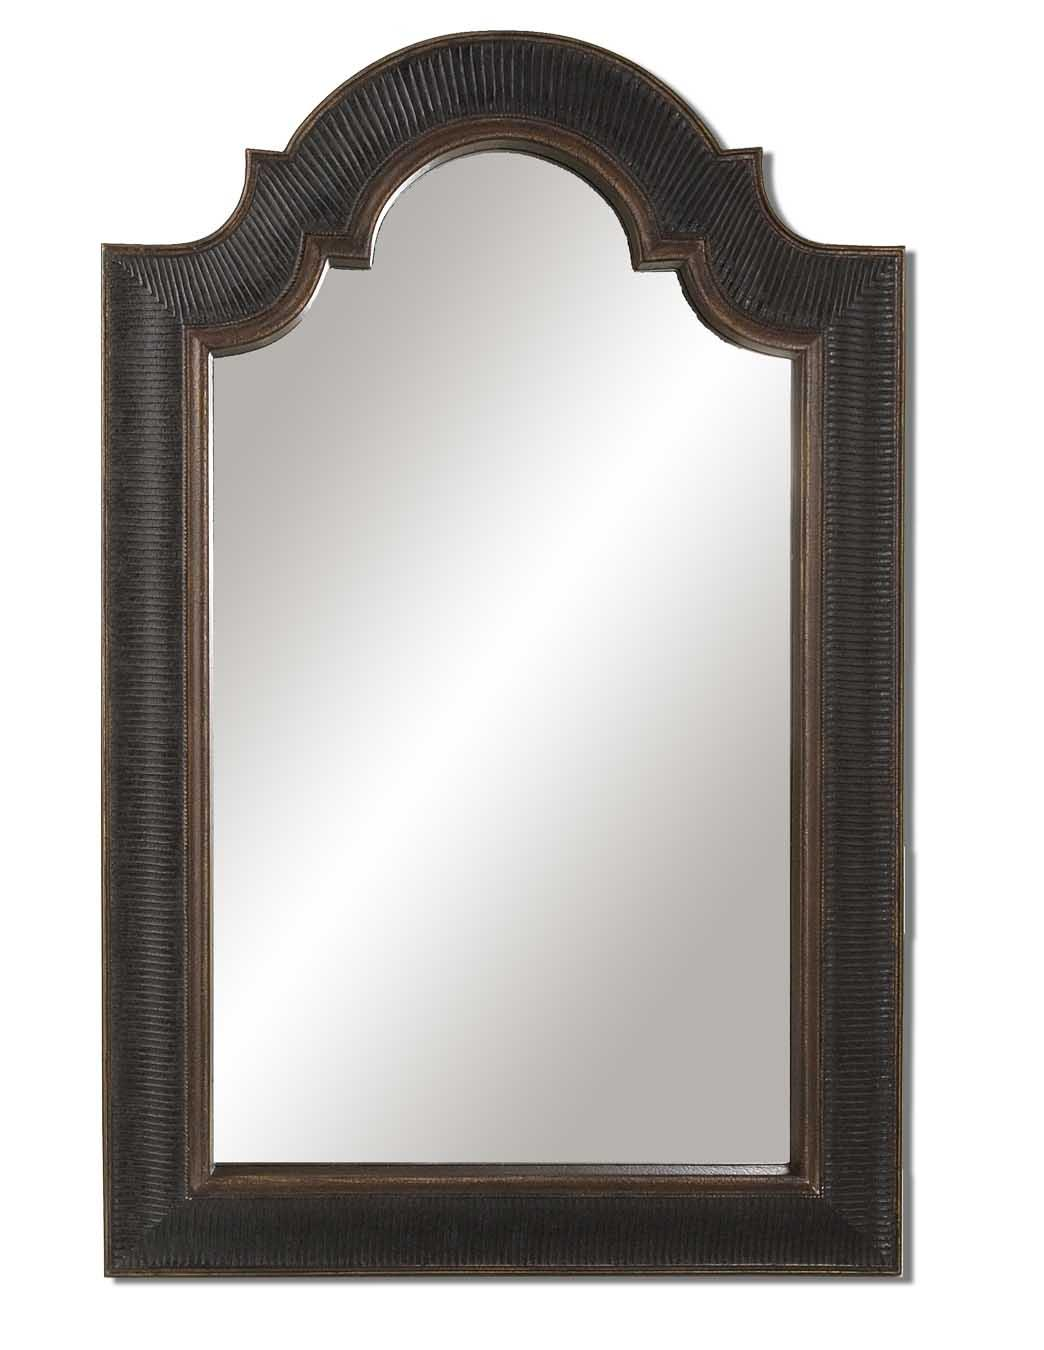 Uttermost Mirrors Ribbed Arch U Mirror - Item Number: 01760 P